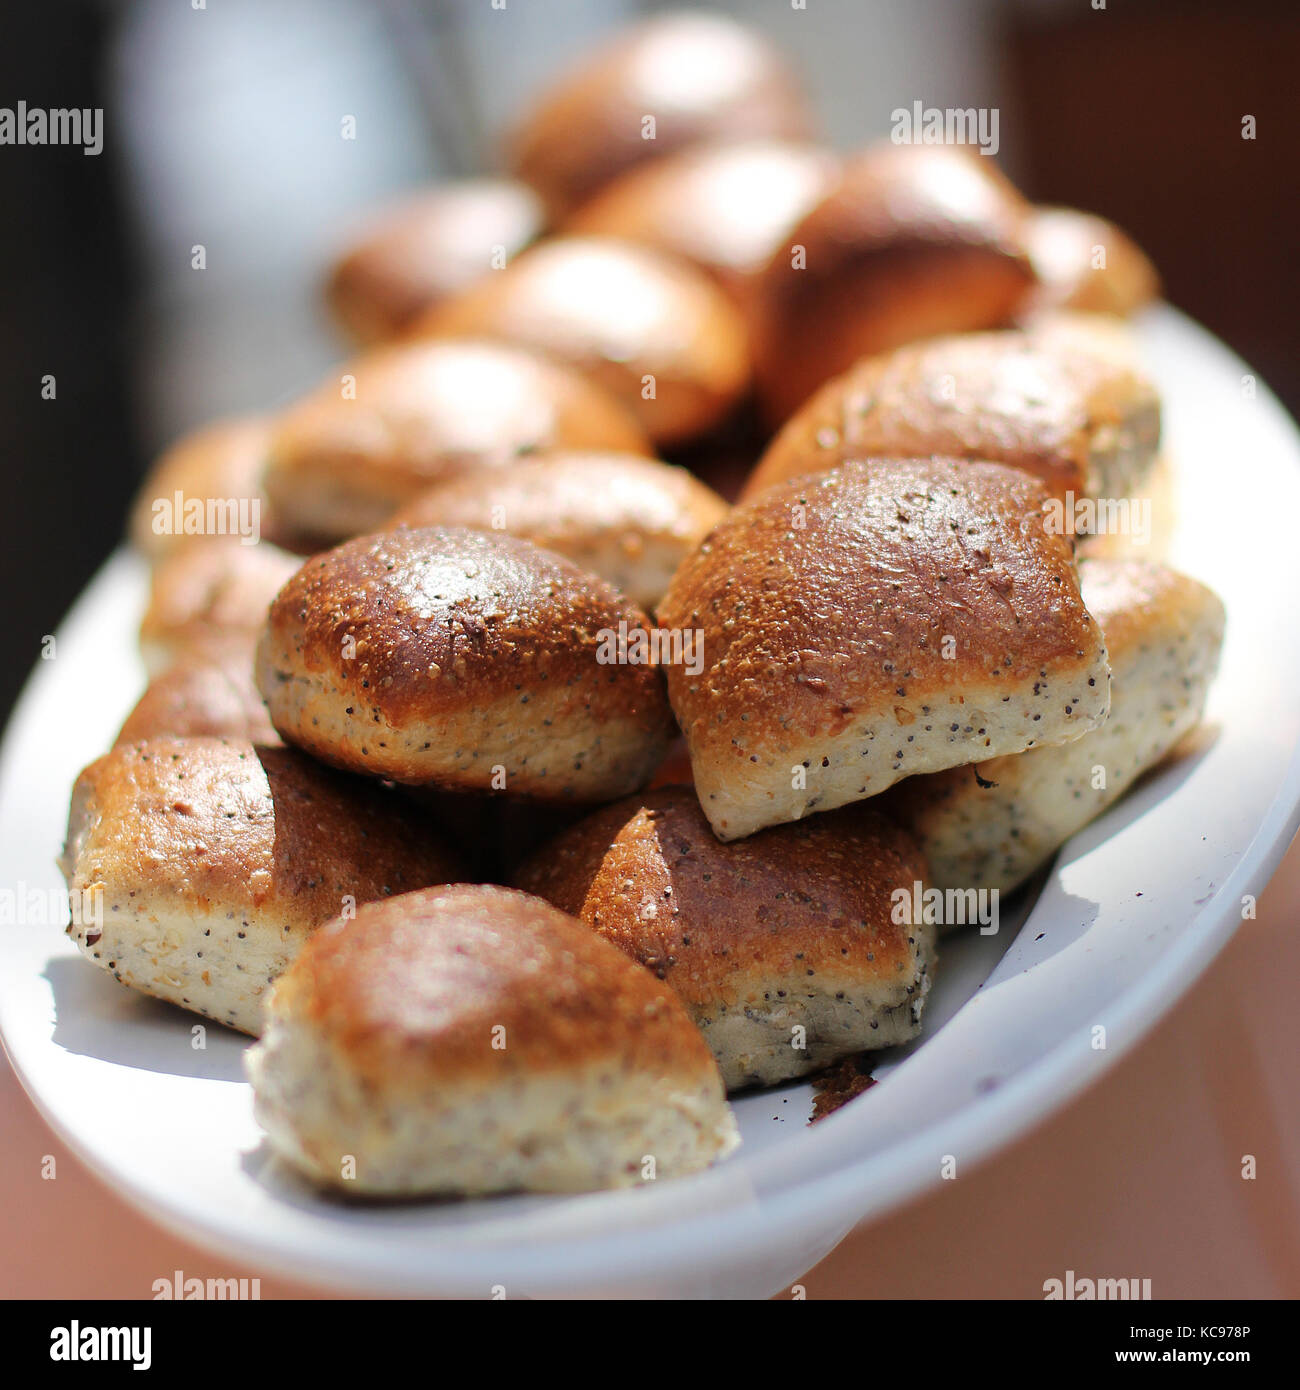 Freshly baked wheat buns with poppy seeds on the white plate - Stock Image